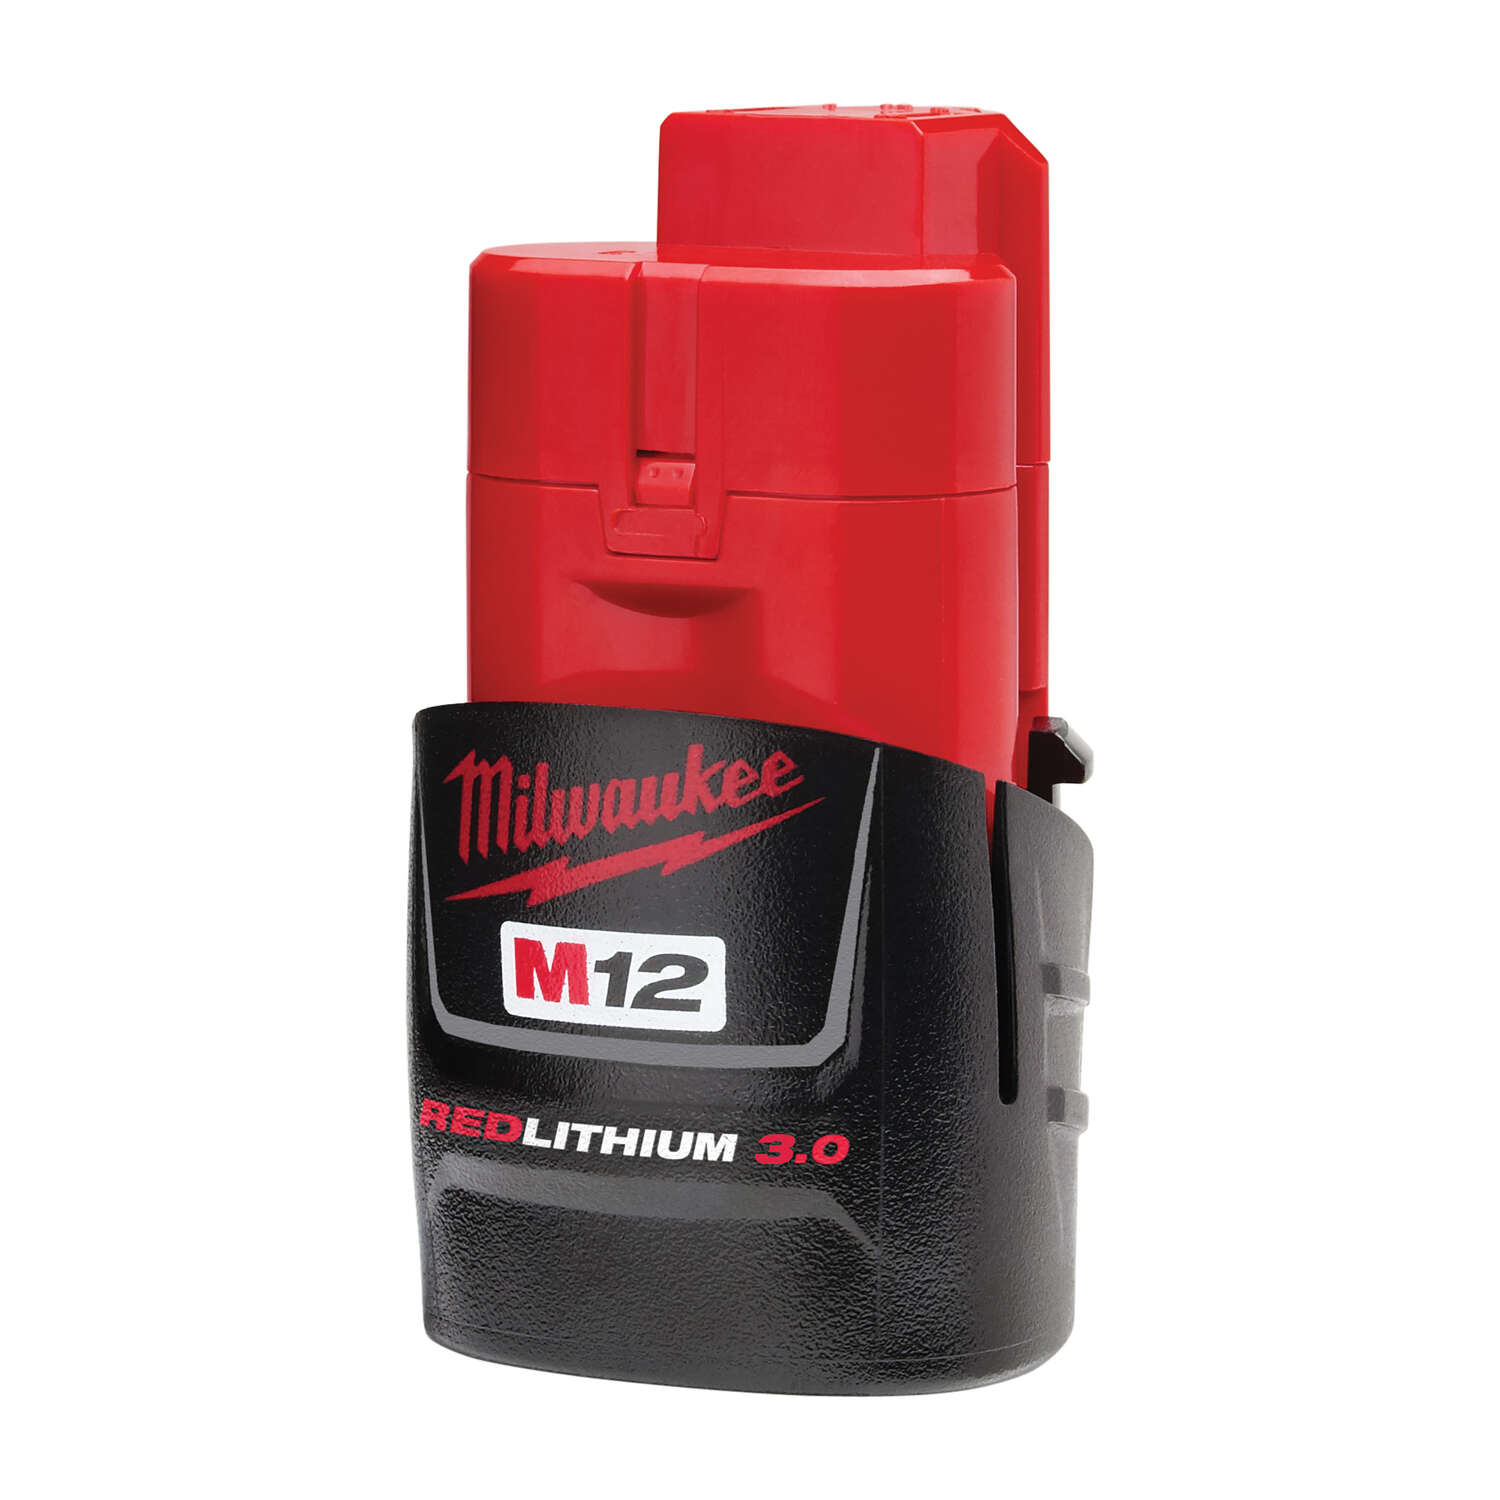 Milwaukee  M12 3.0  RED LITHIUM 3.0  12 volt Lithium-Ion  Battery Pack  1 pc.